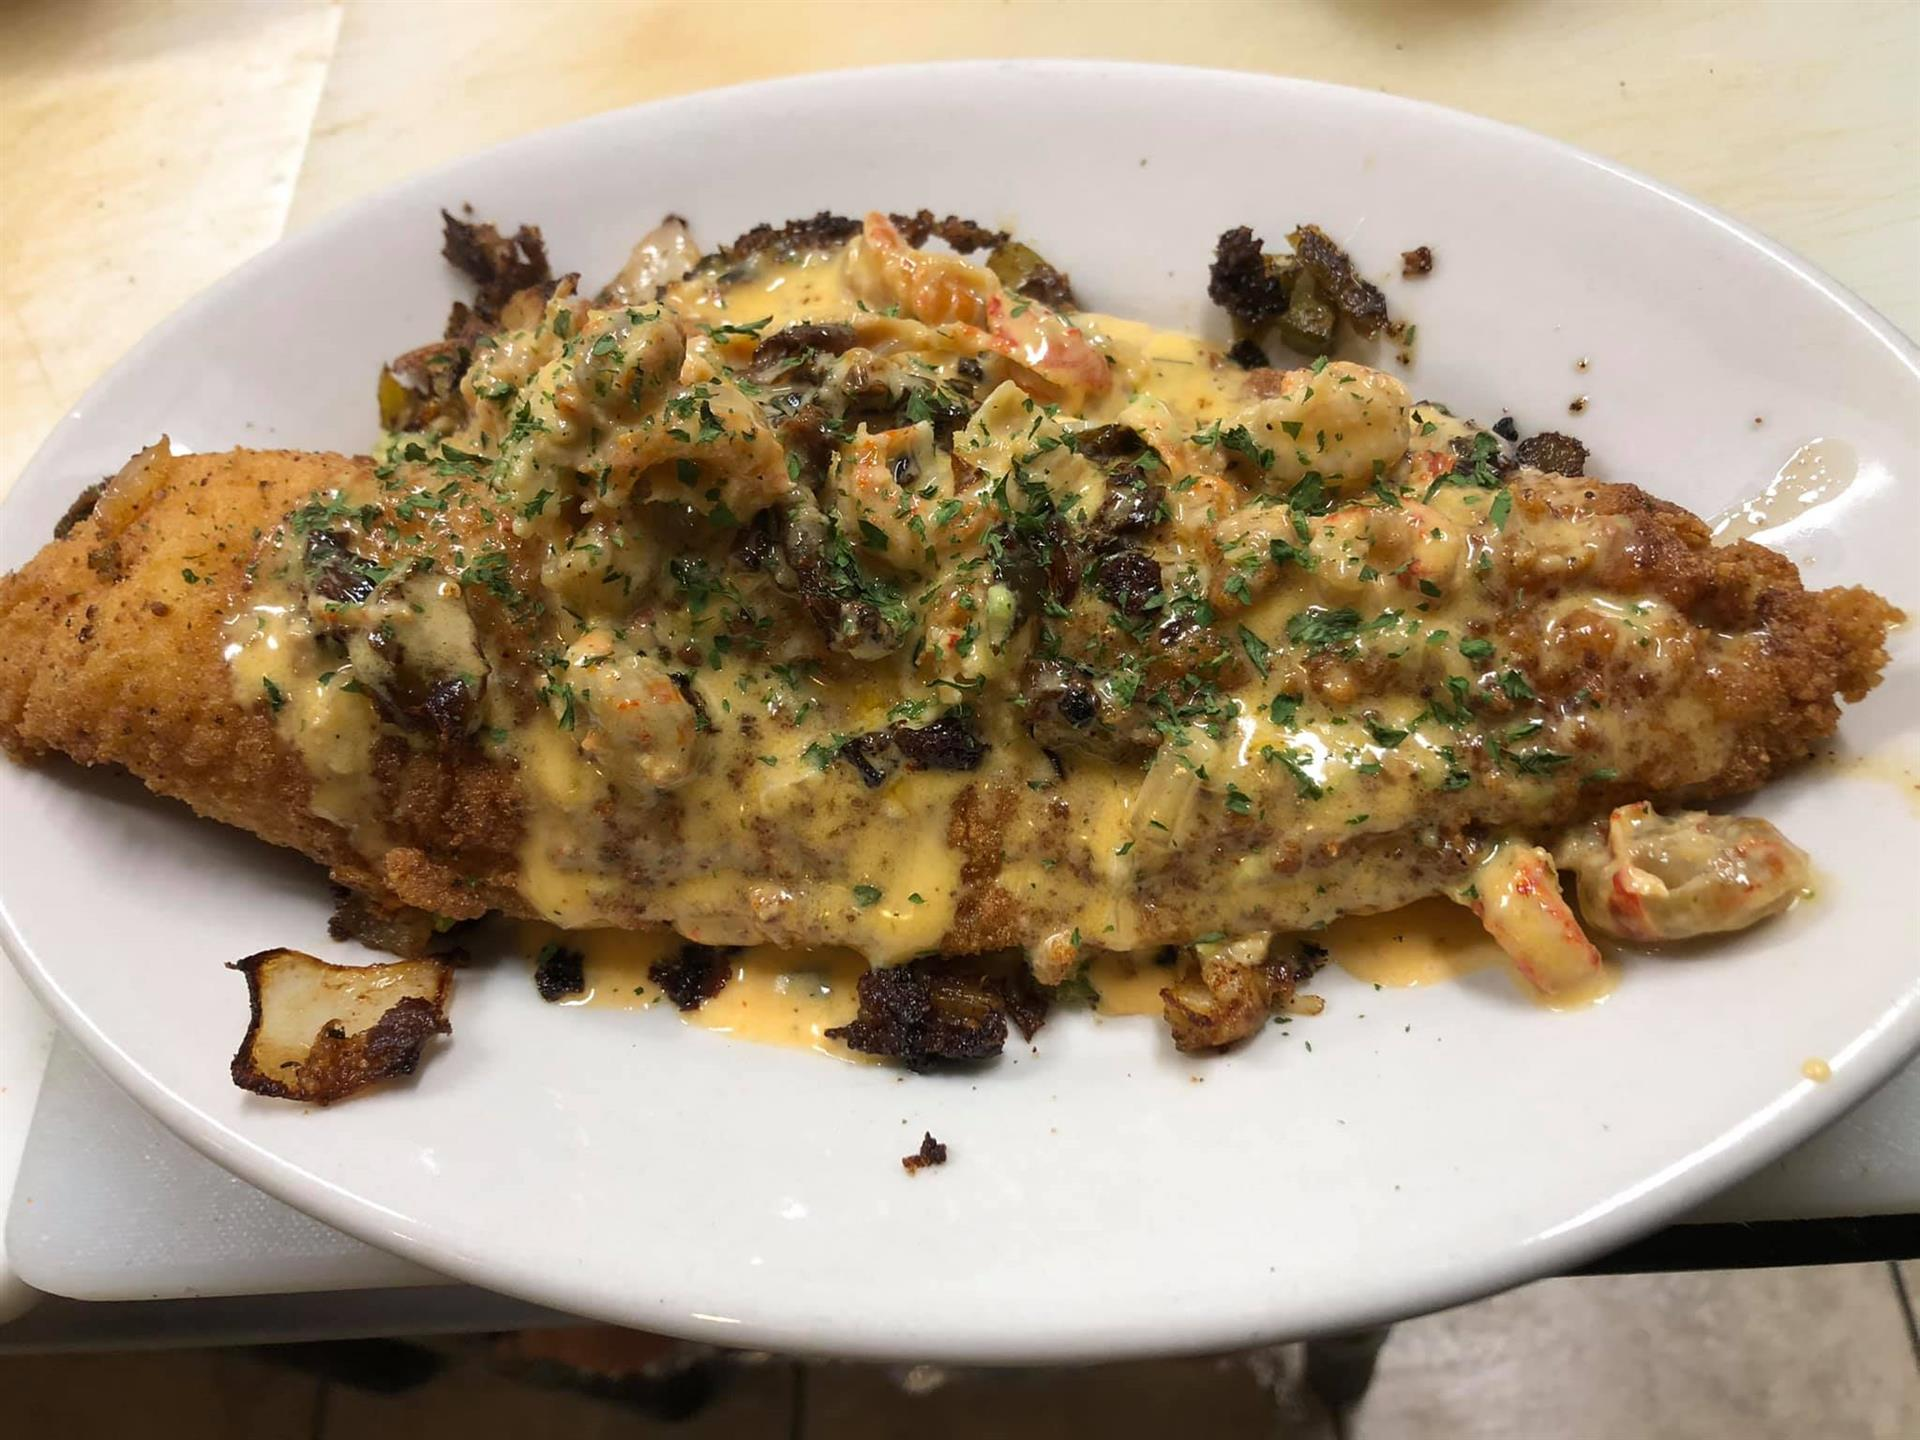 fried fish topped with cajun sauce